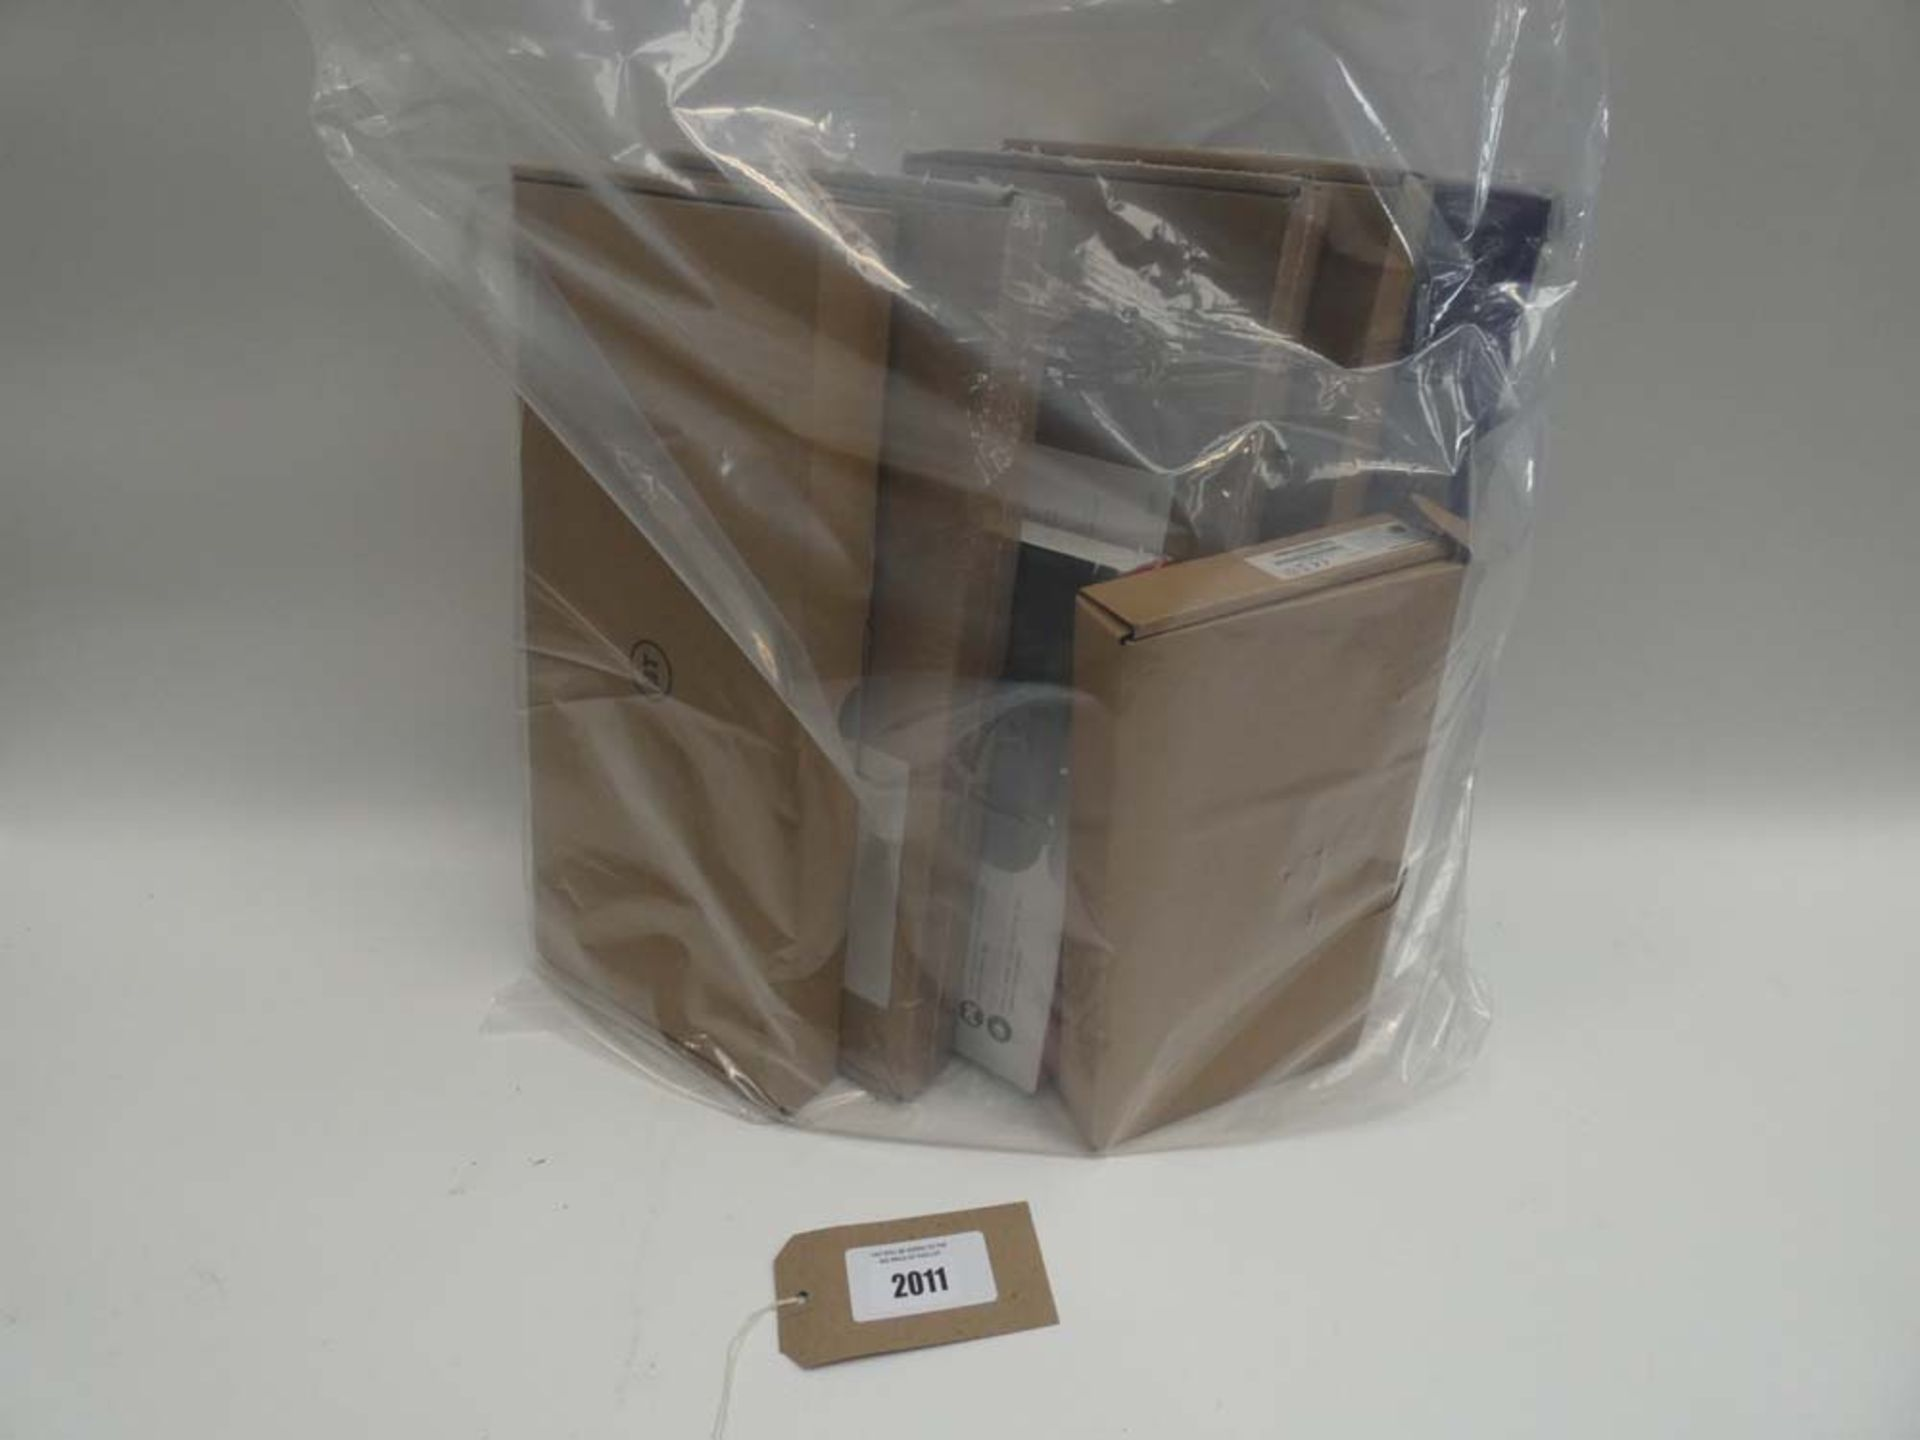 Lot 2011 - Bag containing quantity of hubs/routers from BT and Sagecom